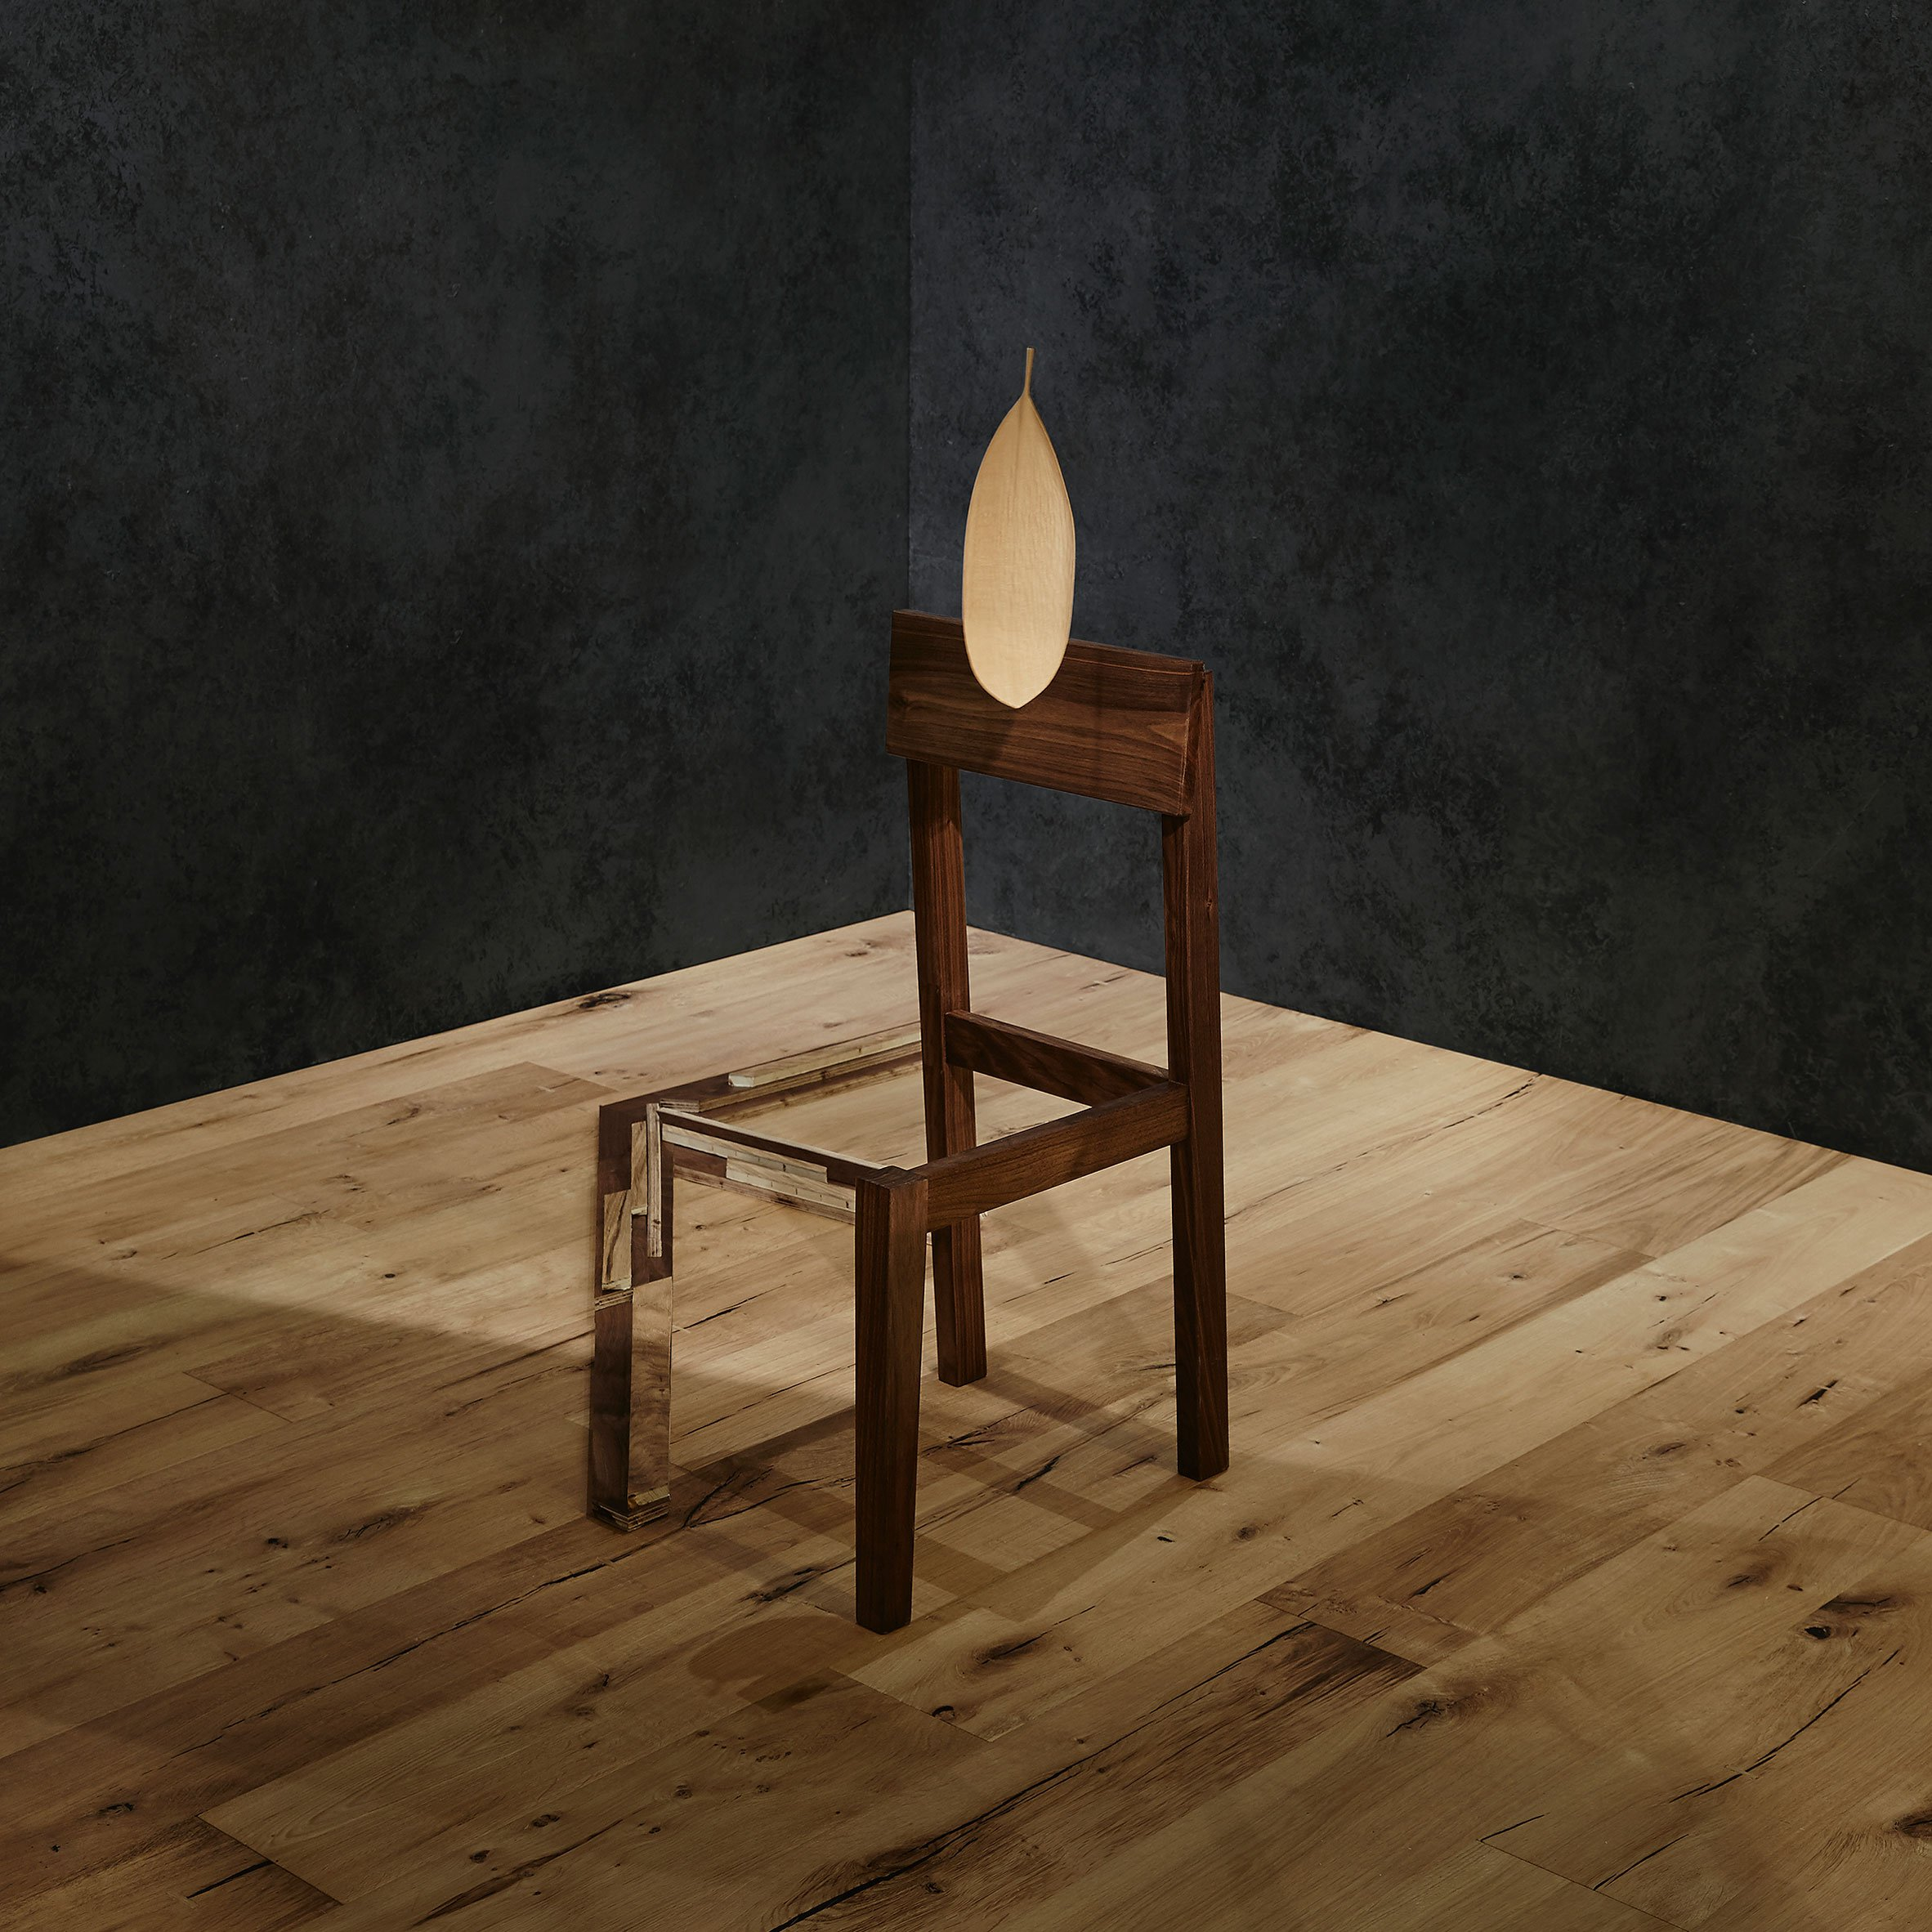 Ugan furniture will be exhibited at Design Shanghai